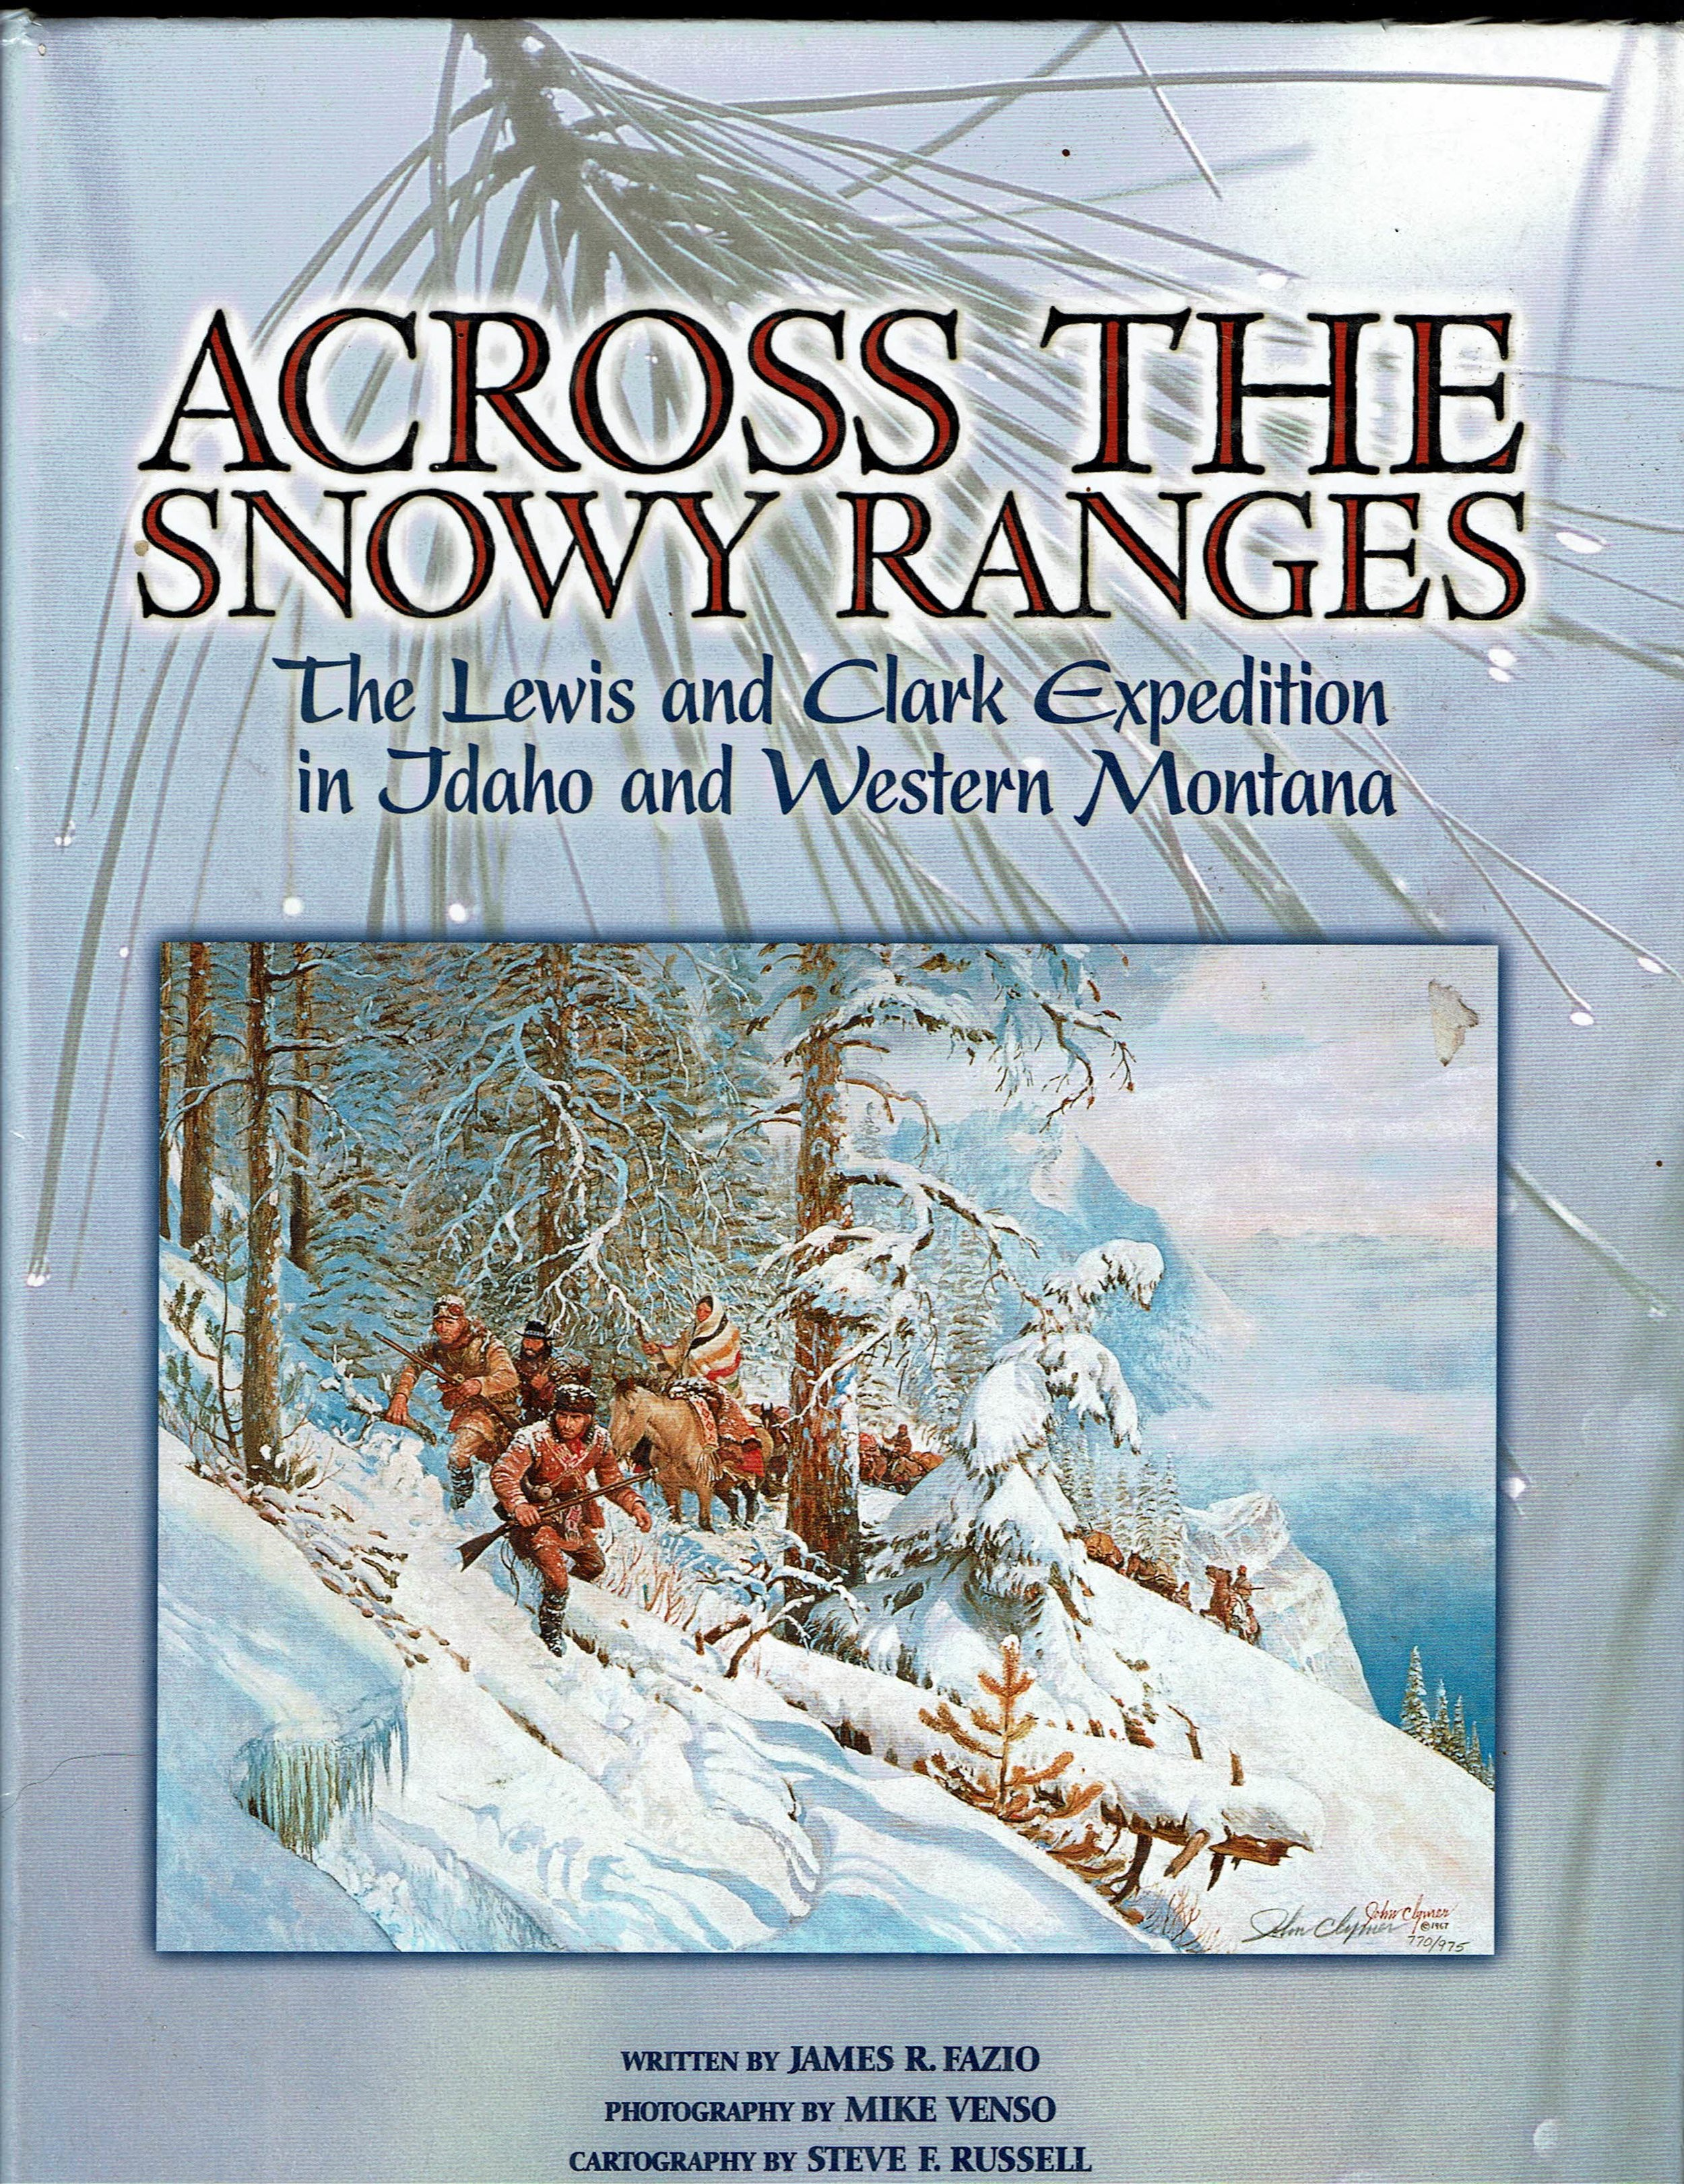 James R. Fazio. ACROSS THE SNOWY RANGES Published 2001 ISBN 0-9615031-4-9